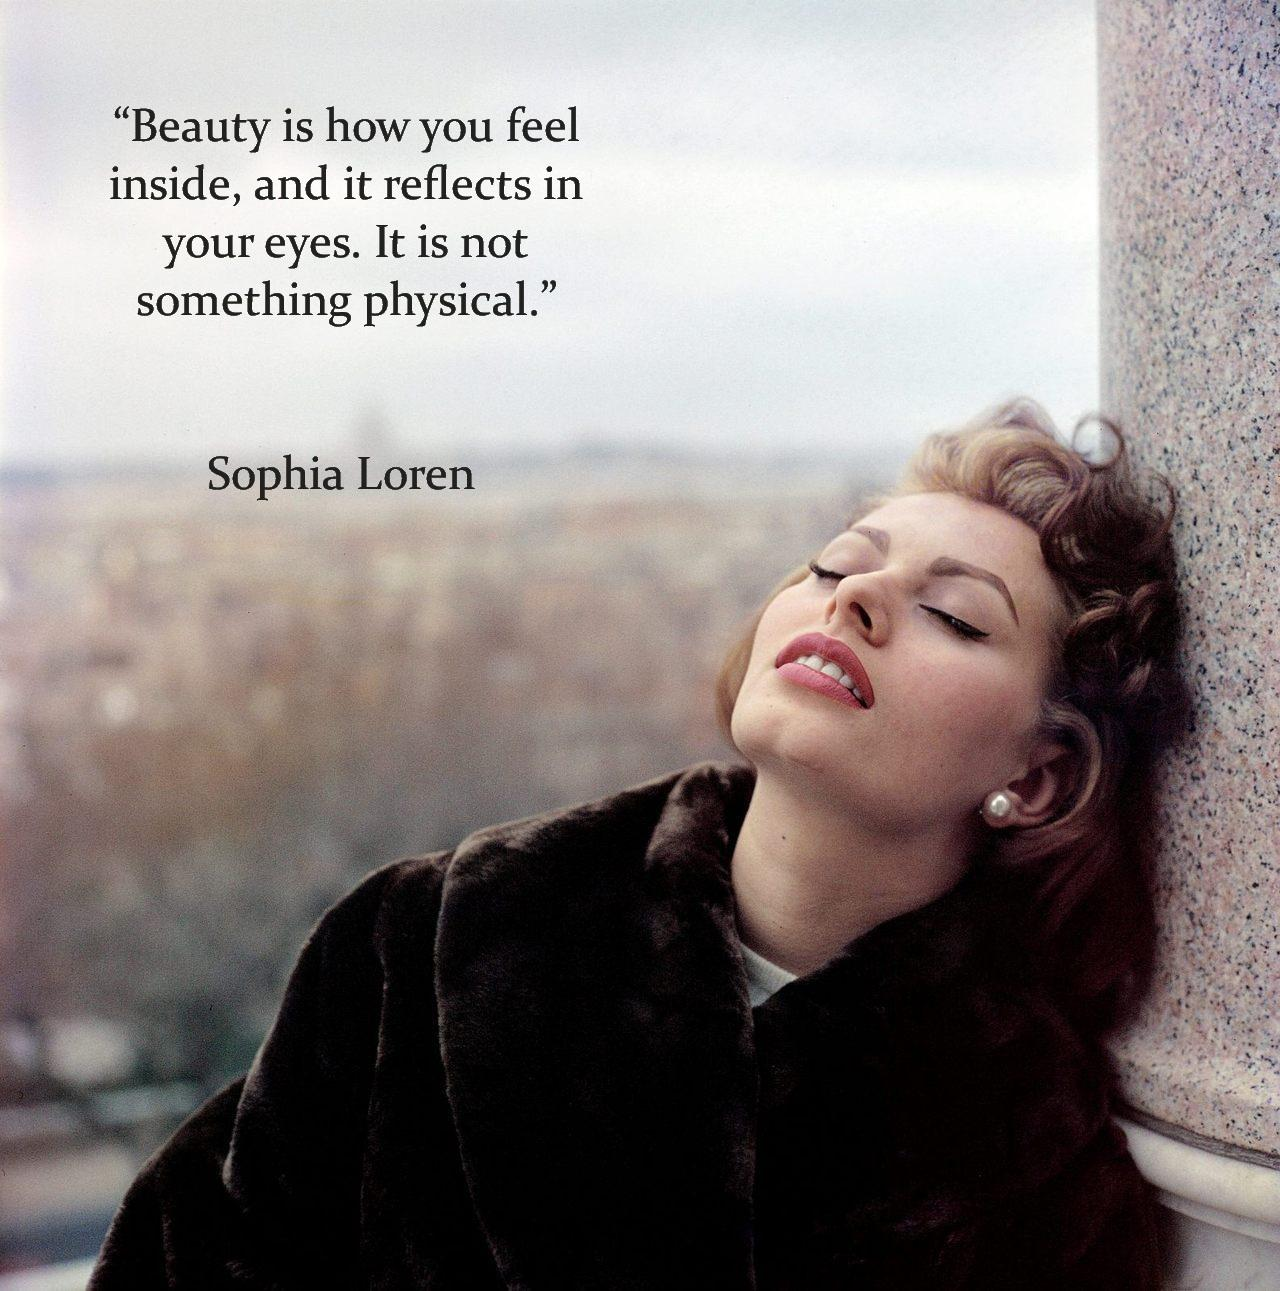 """Beauty is how you feel inside, and it reflects in your eyes. It is not something physical."" Sophia Loren [1280 x 1291]"